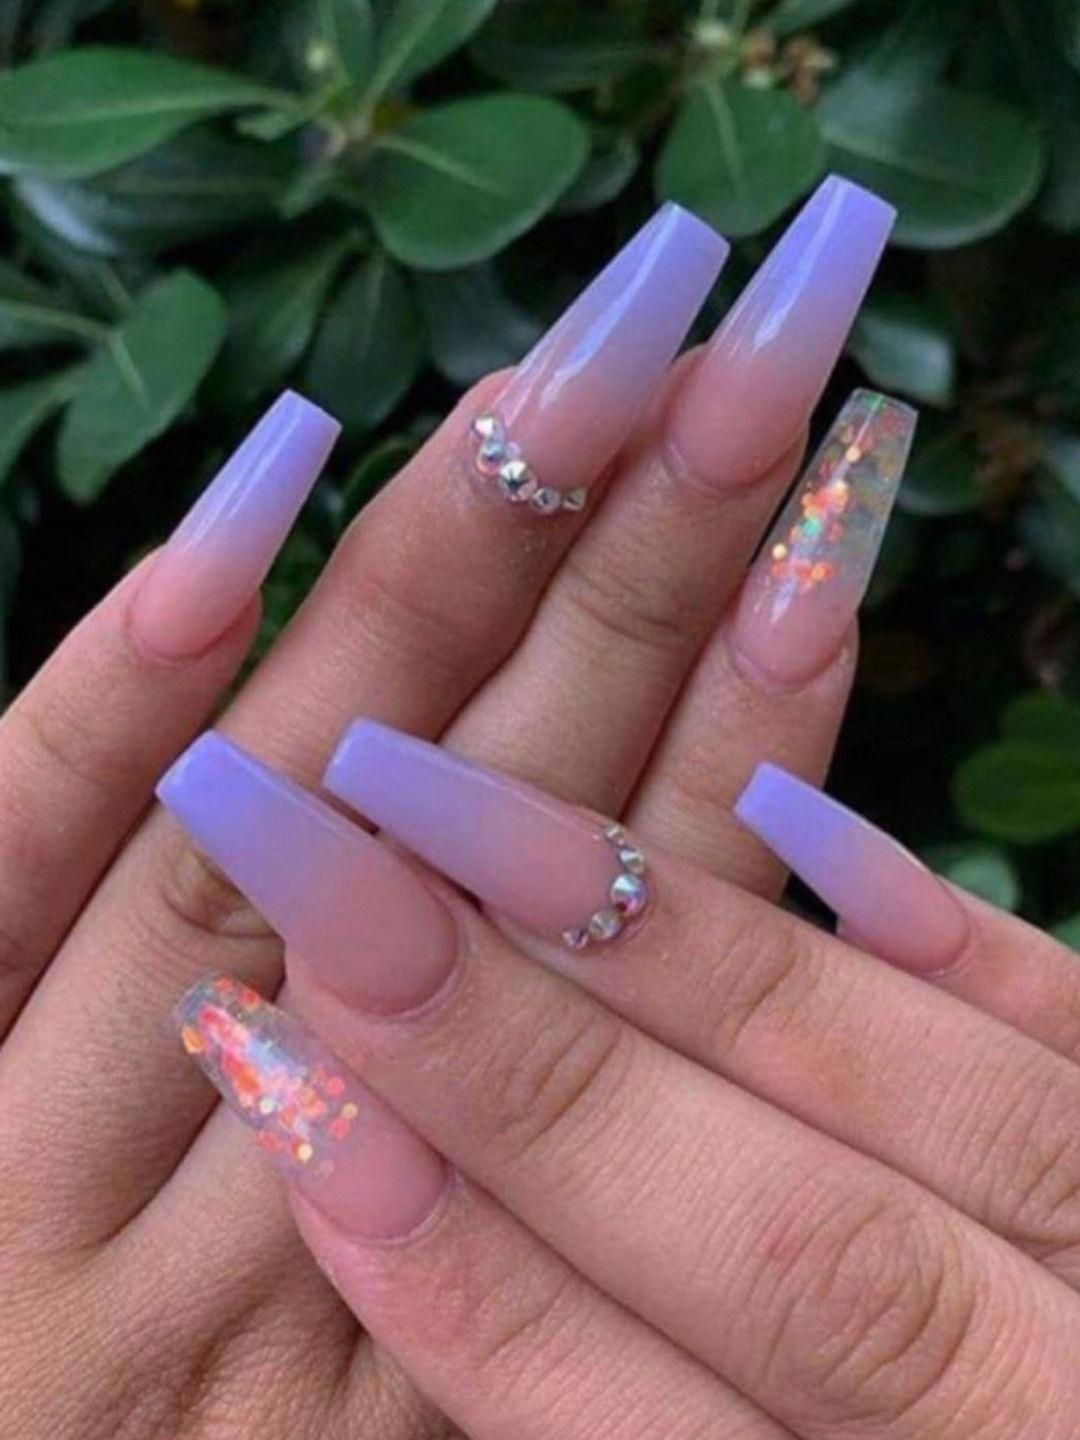 Short Nail Designs in 2020 | Long acrylic nails, Best ...